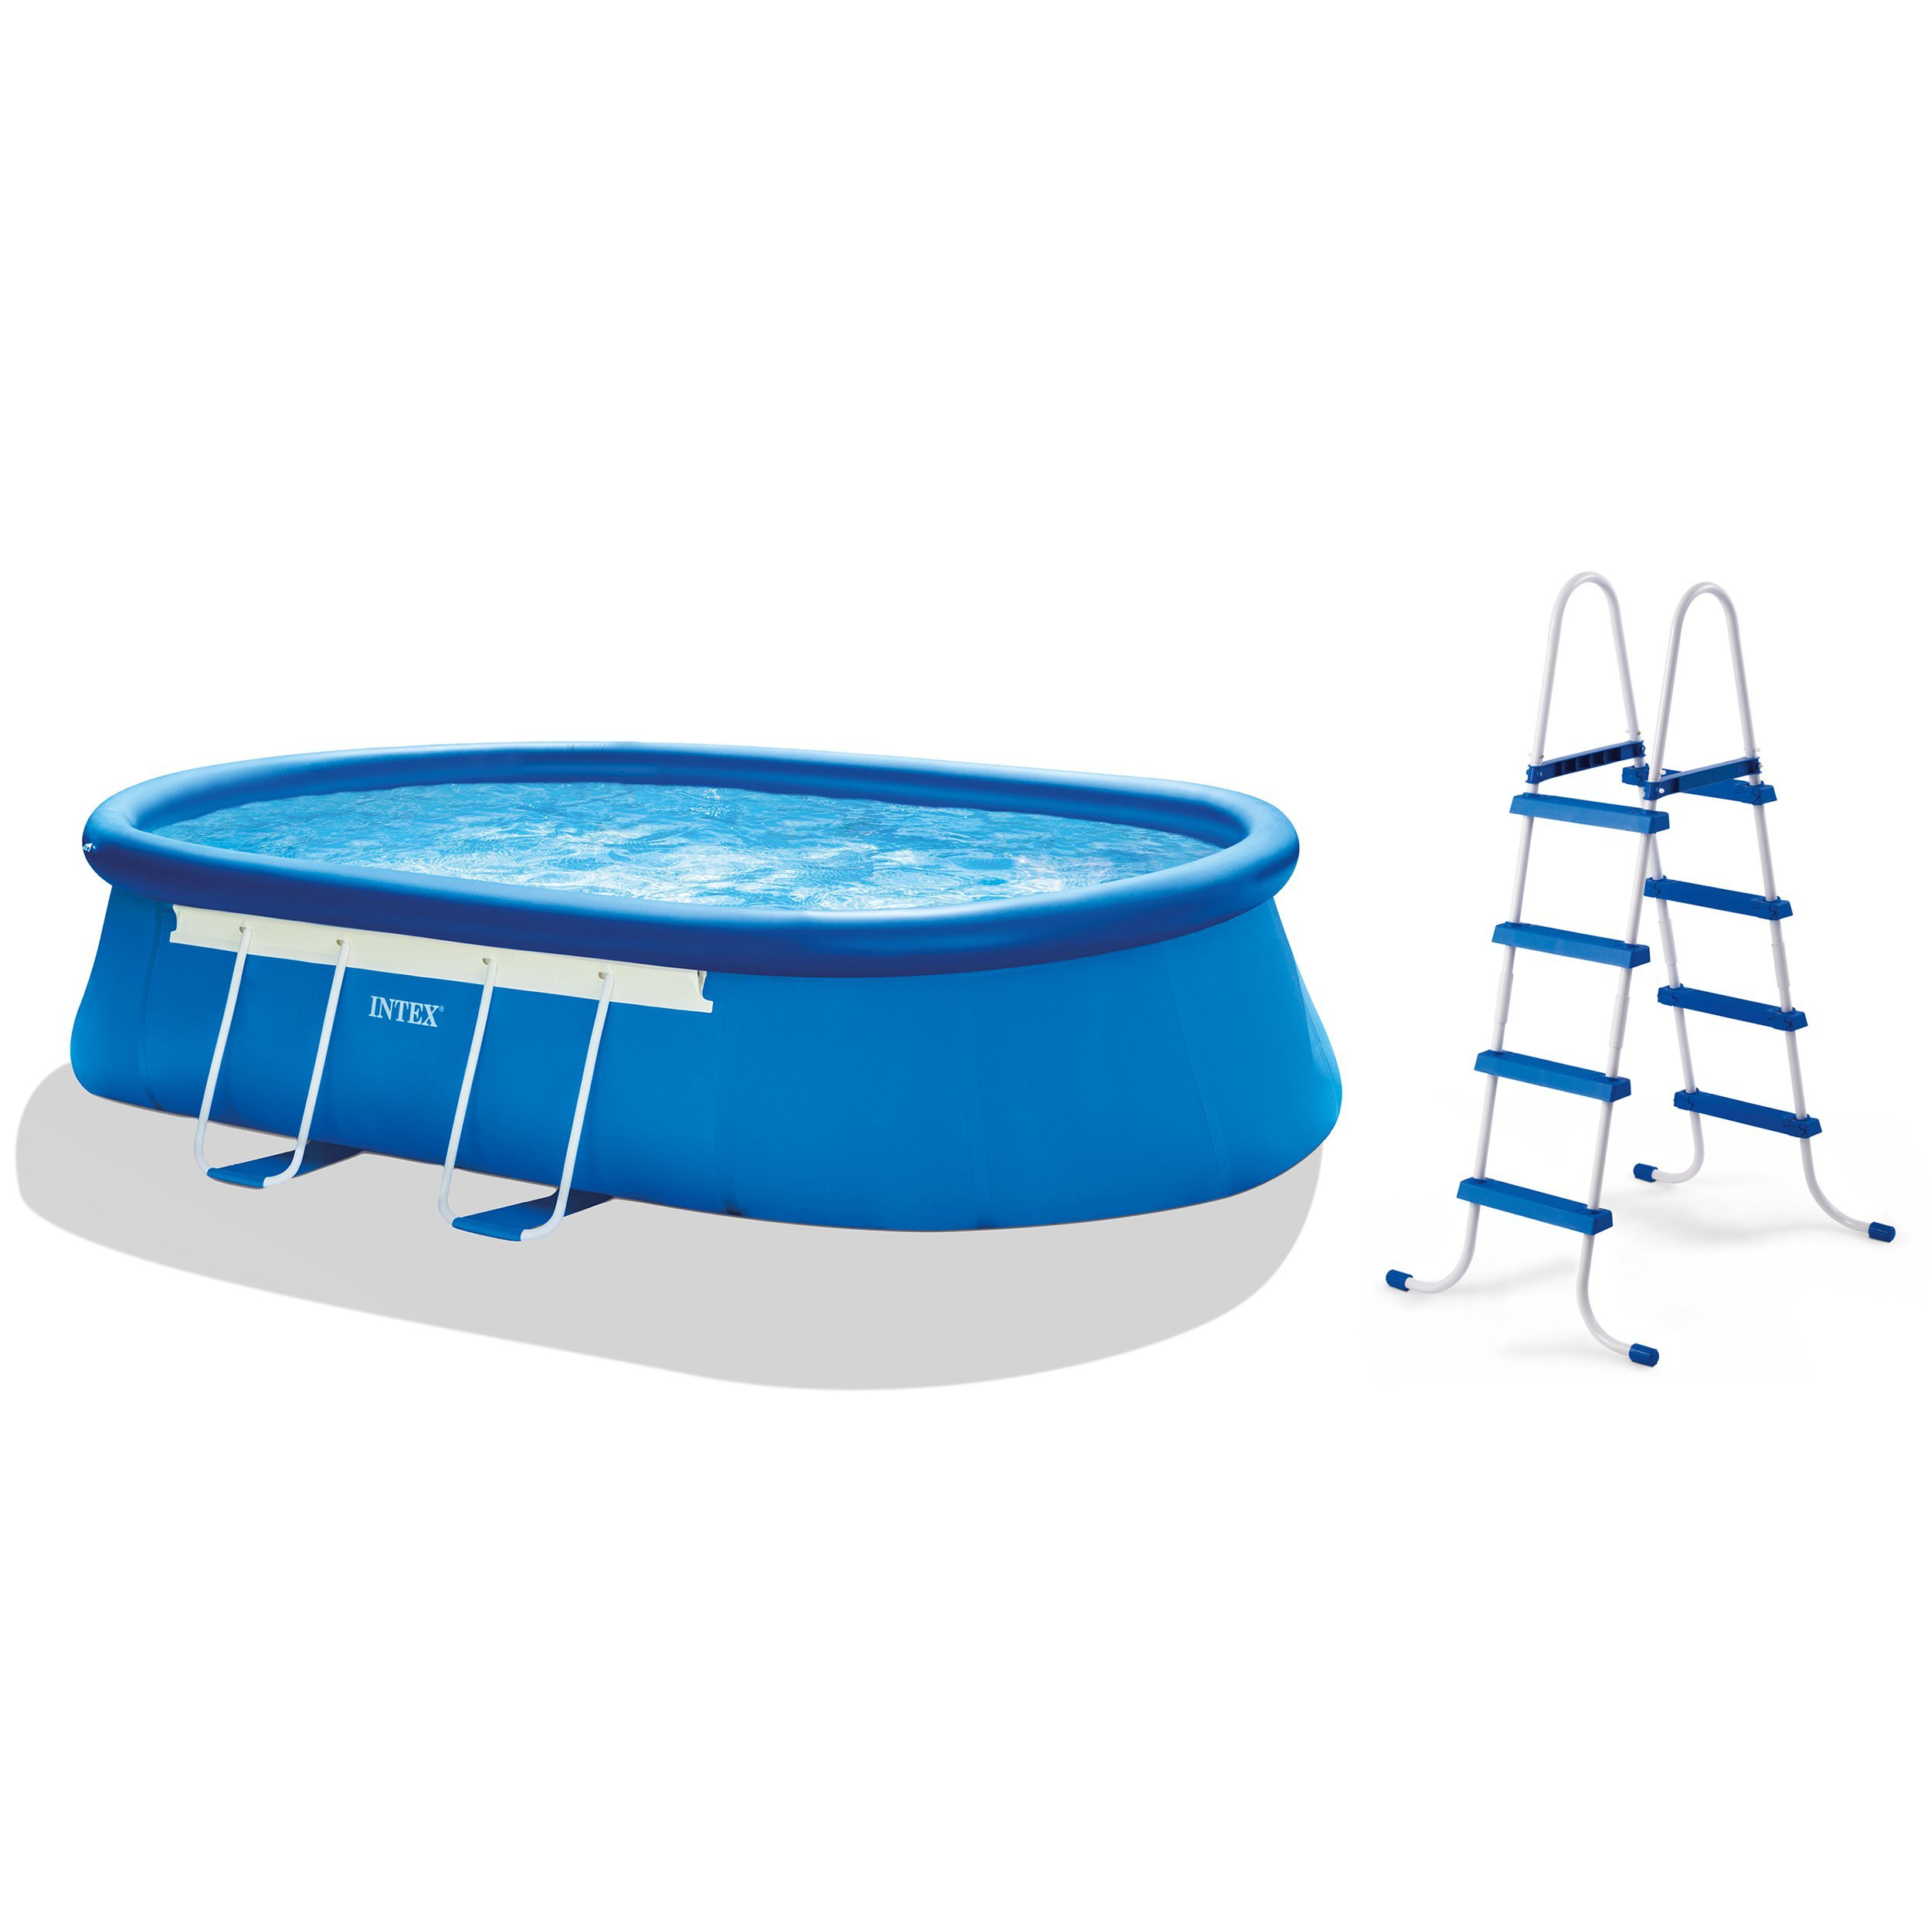 Intex 18ft X 10ft X 42in Oval Frame Pool Set with Filter Pump, Ladder, Ground Cloth & Pool Cover by Intex